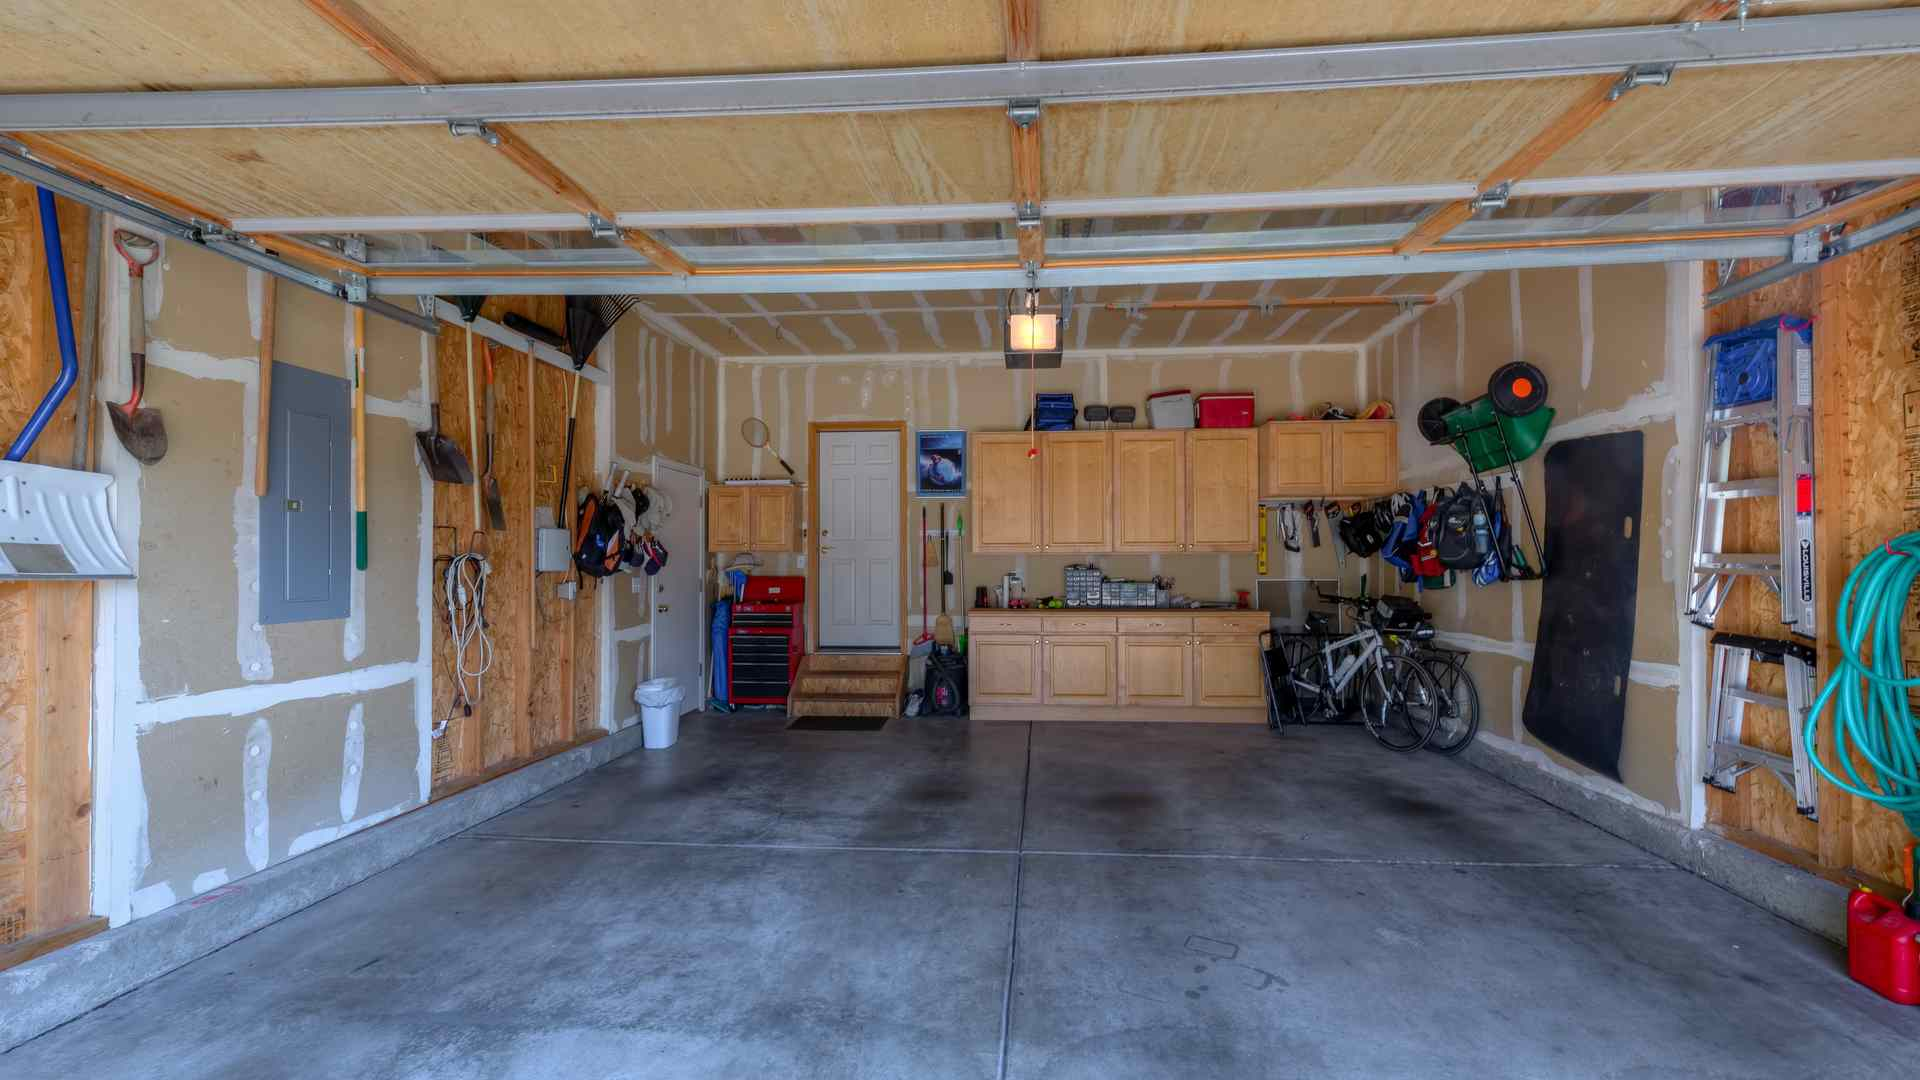 28 1995 Interior Garage 5TMDE Default RVT2 NR 1920 - Real Estate Photos